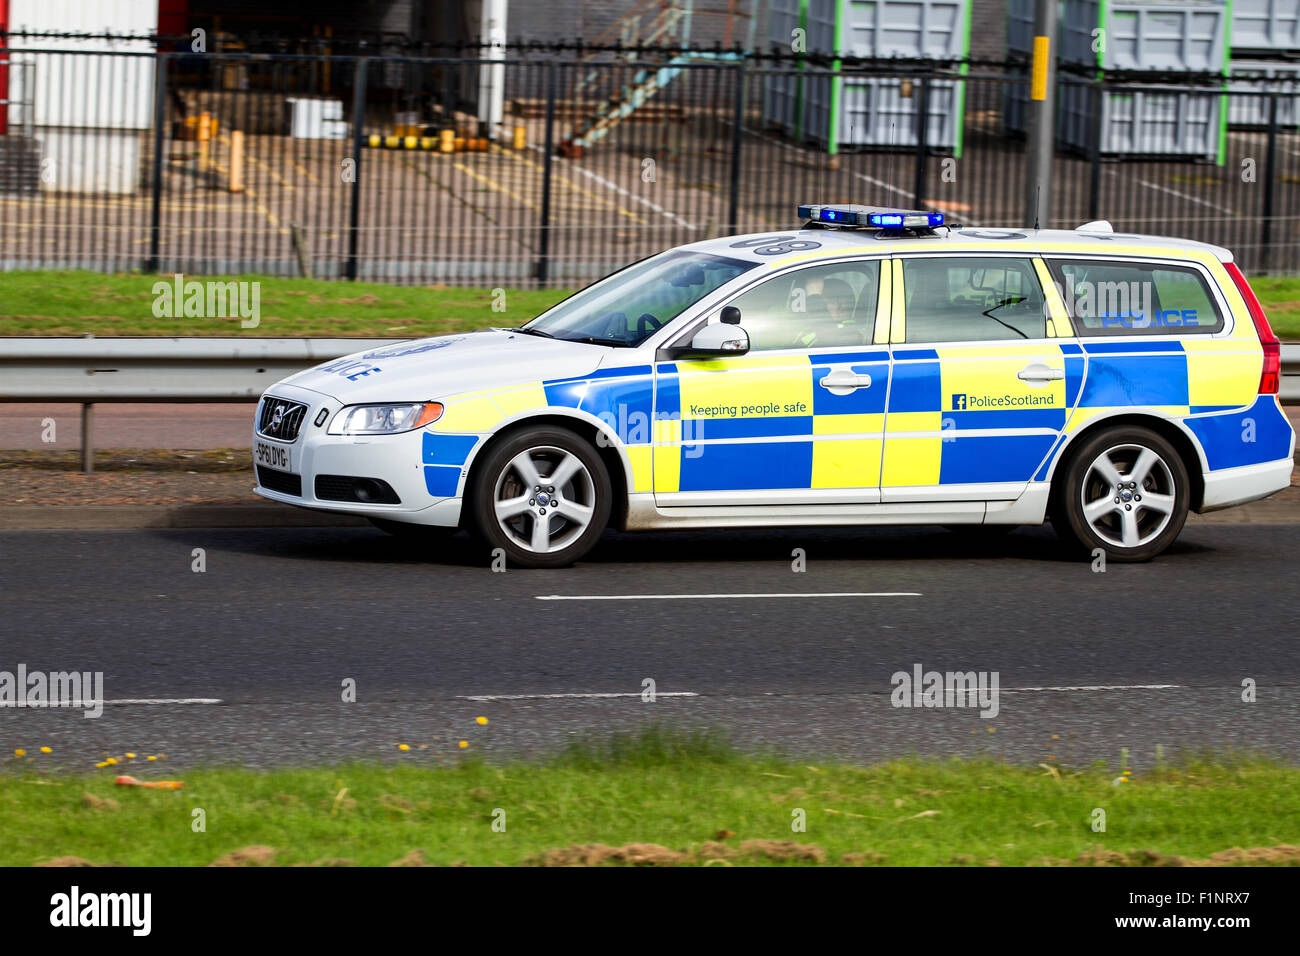 Dundee, Tayside, Scotland, UK, 5th September 2015. Road accident in Dundee. Police Scotland and Scottish Emergency Stock Photo